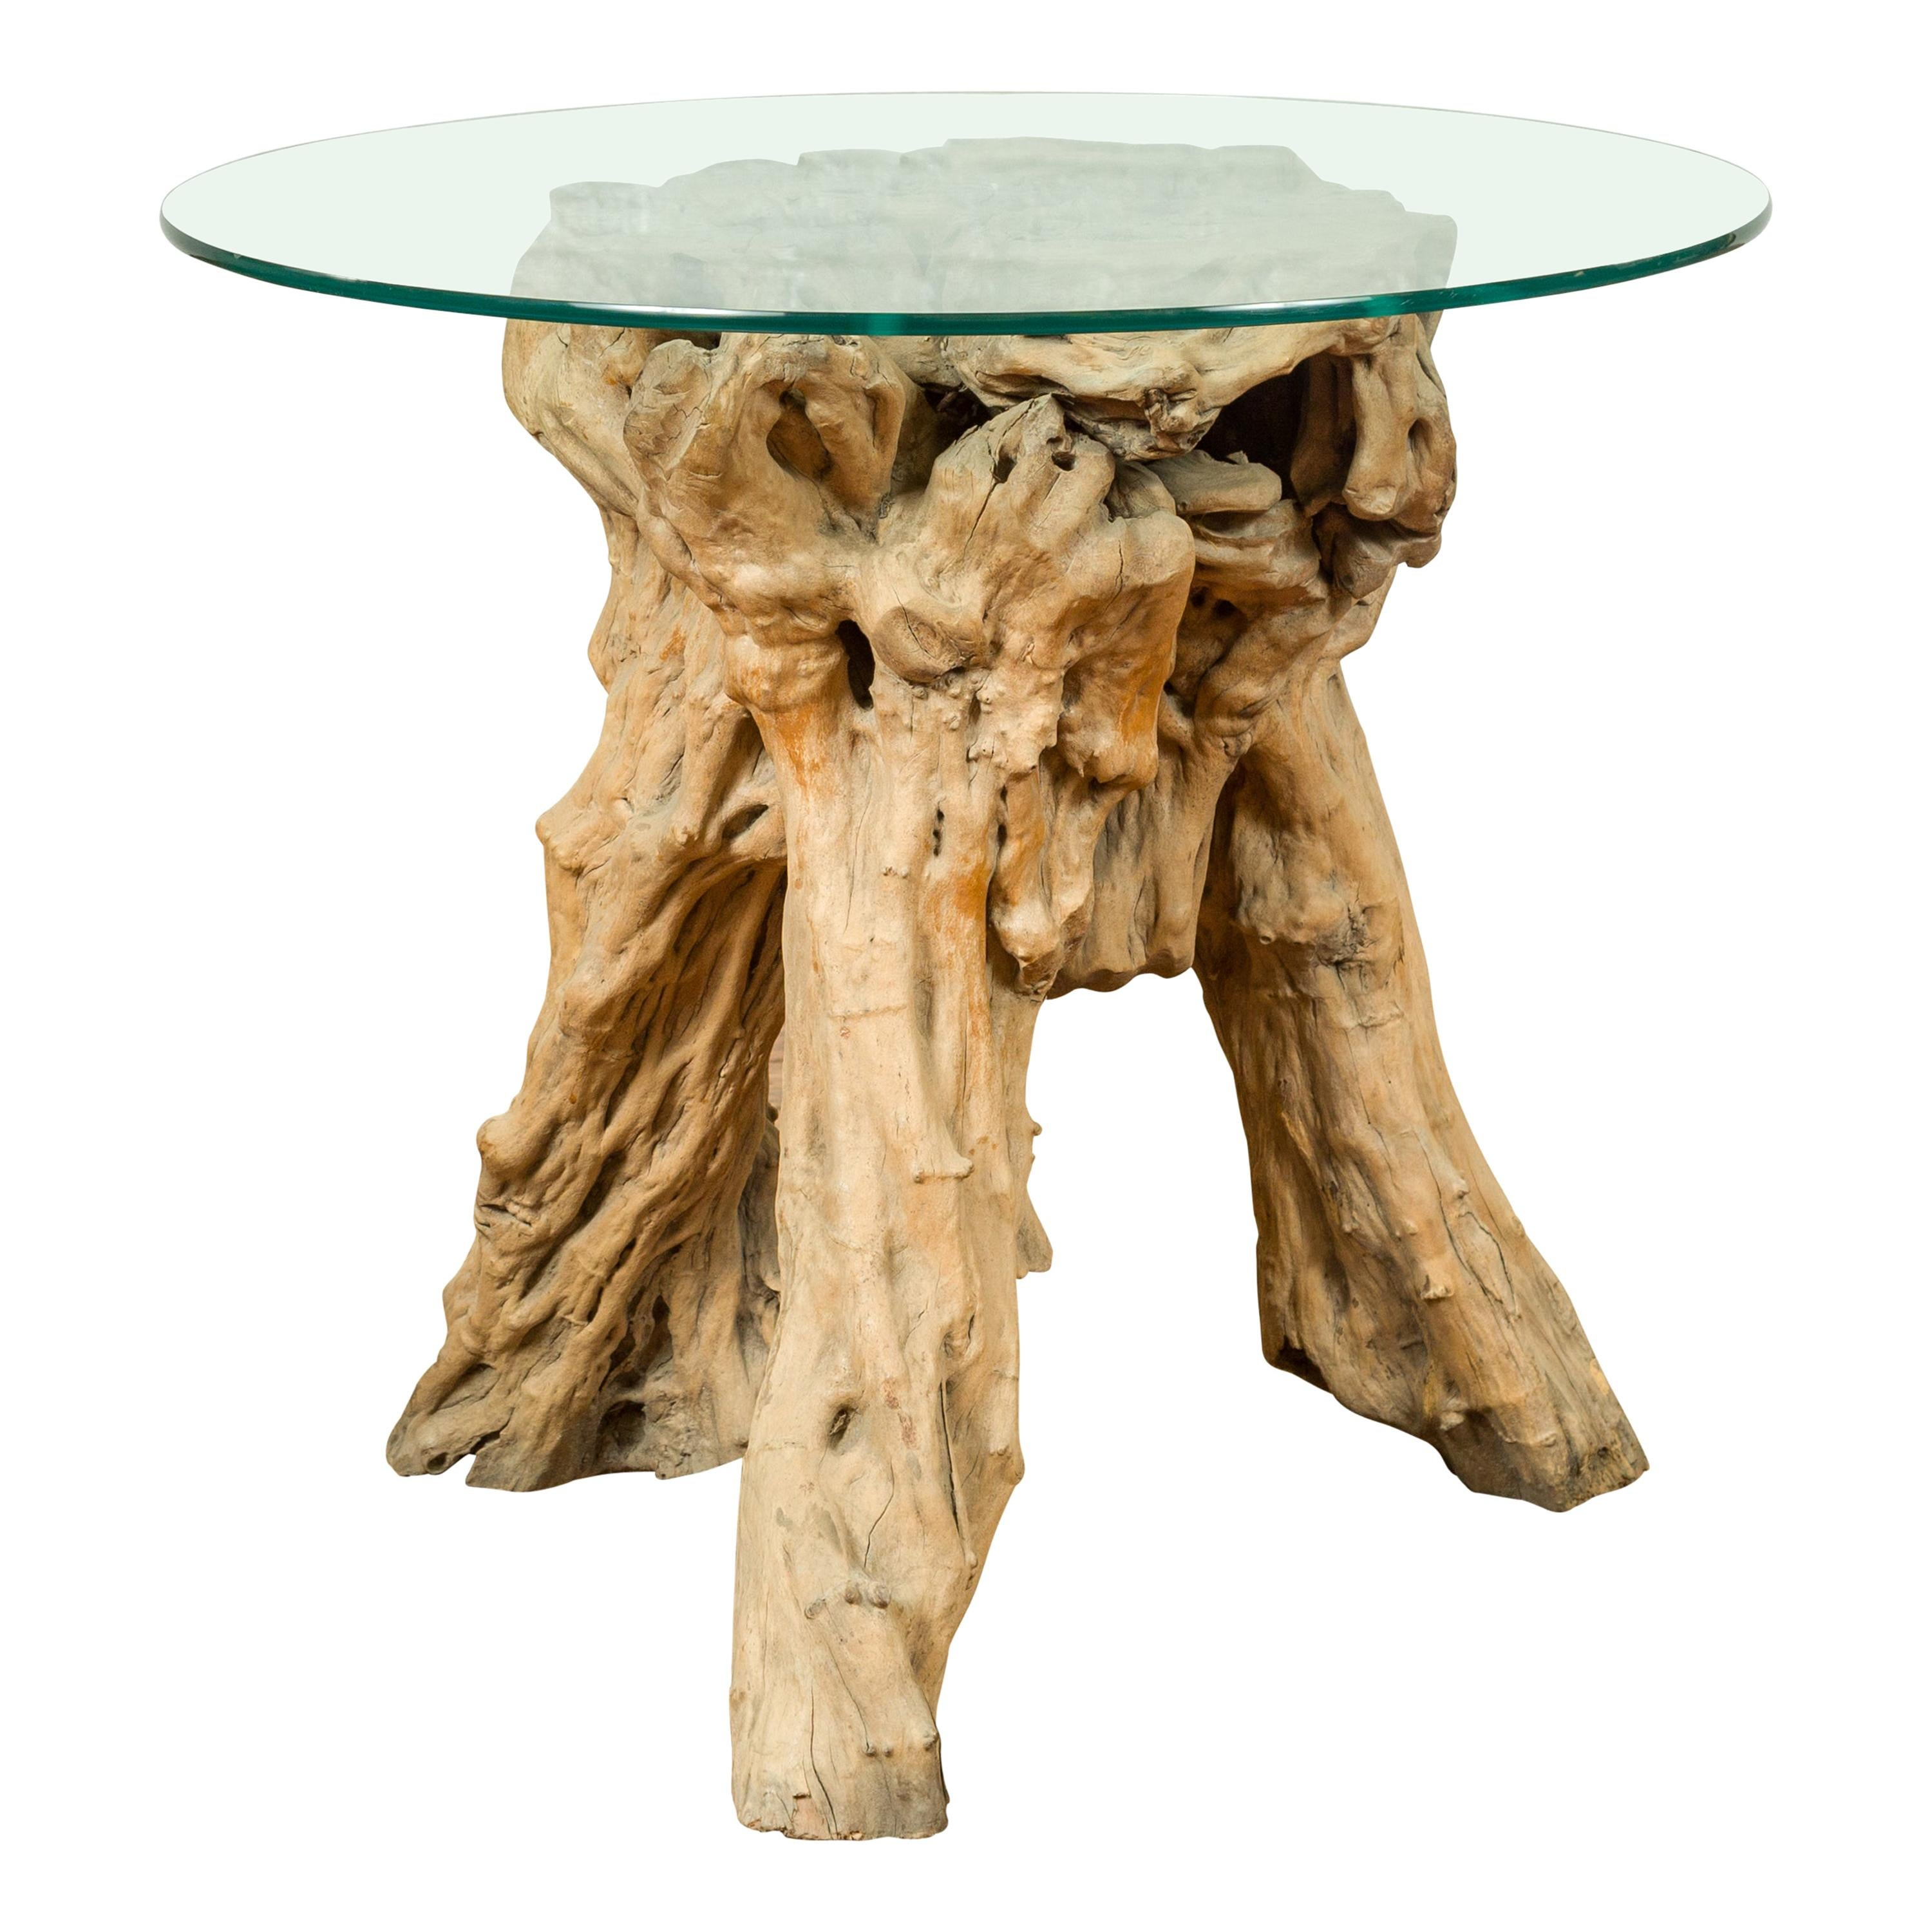 indonesian architectural tree root driftwood pedestal glass top not included